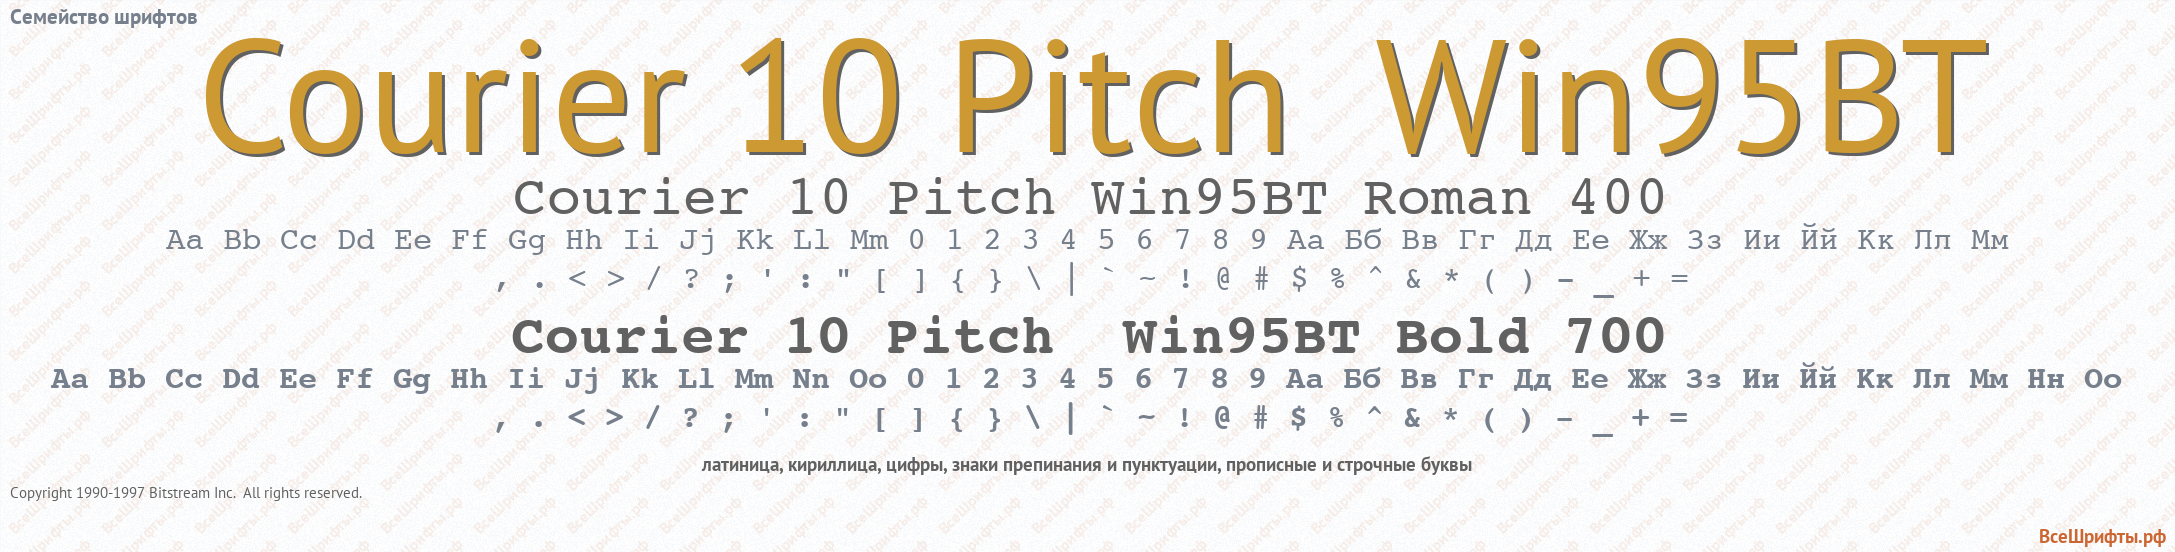 Семейство шрифтов Courier 10 Pitch Win95BT